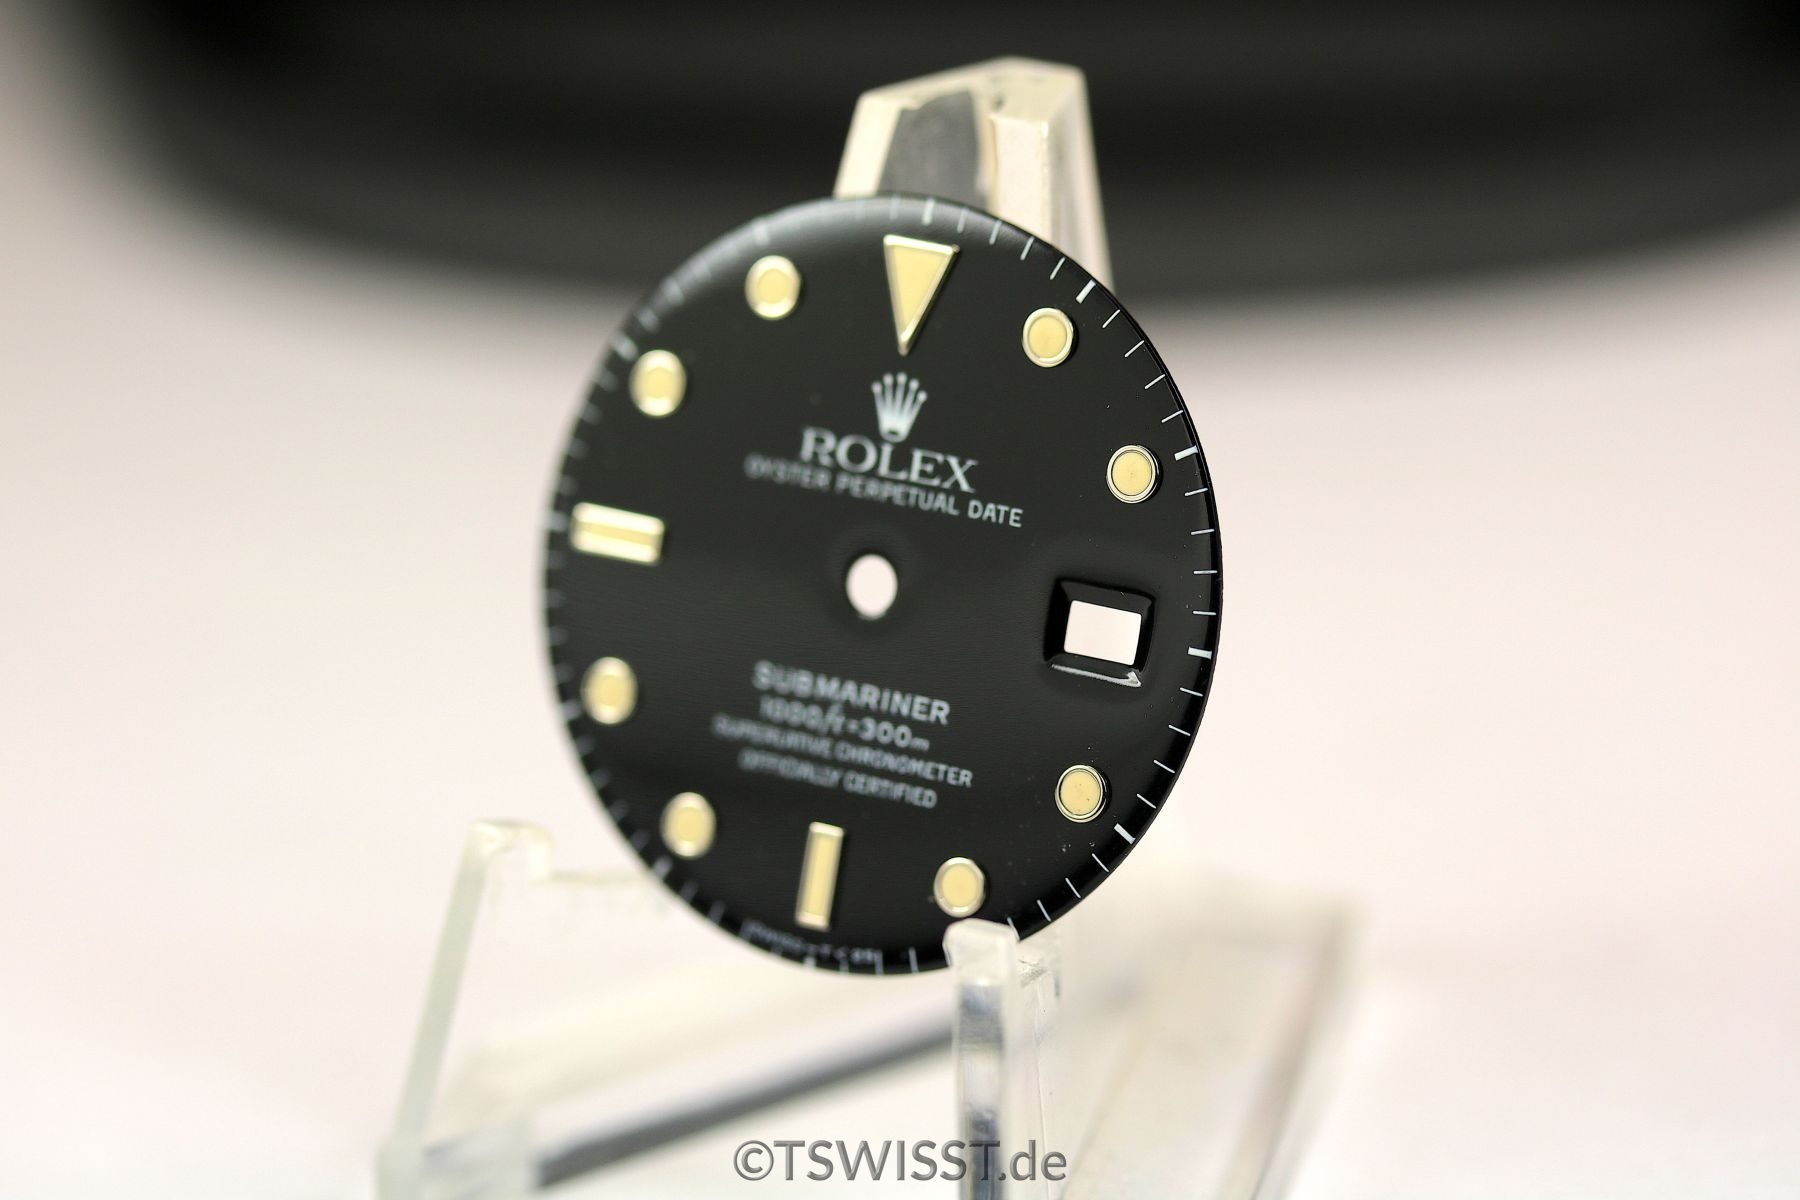 Rolex Submariner dial and inlay